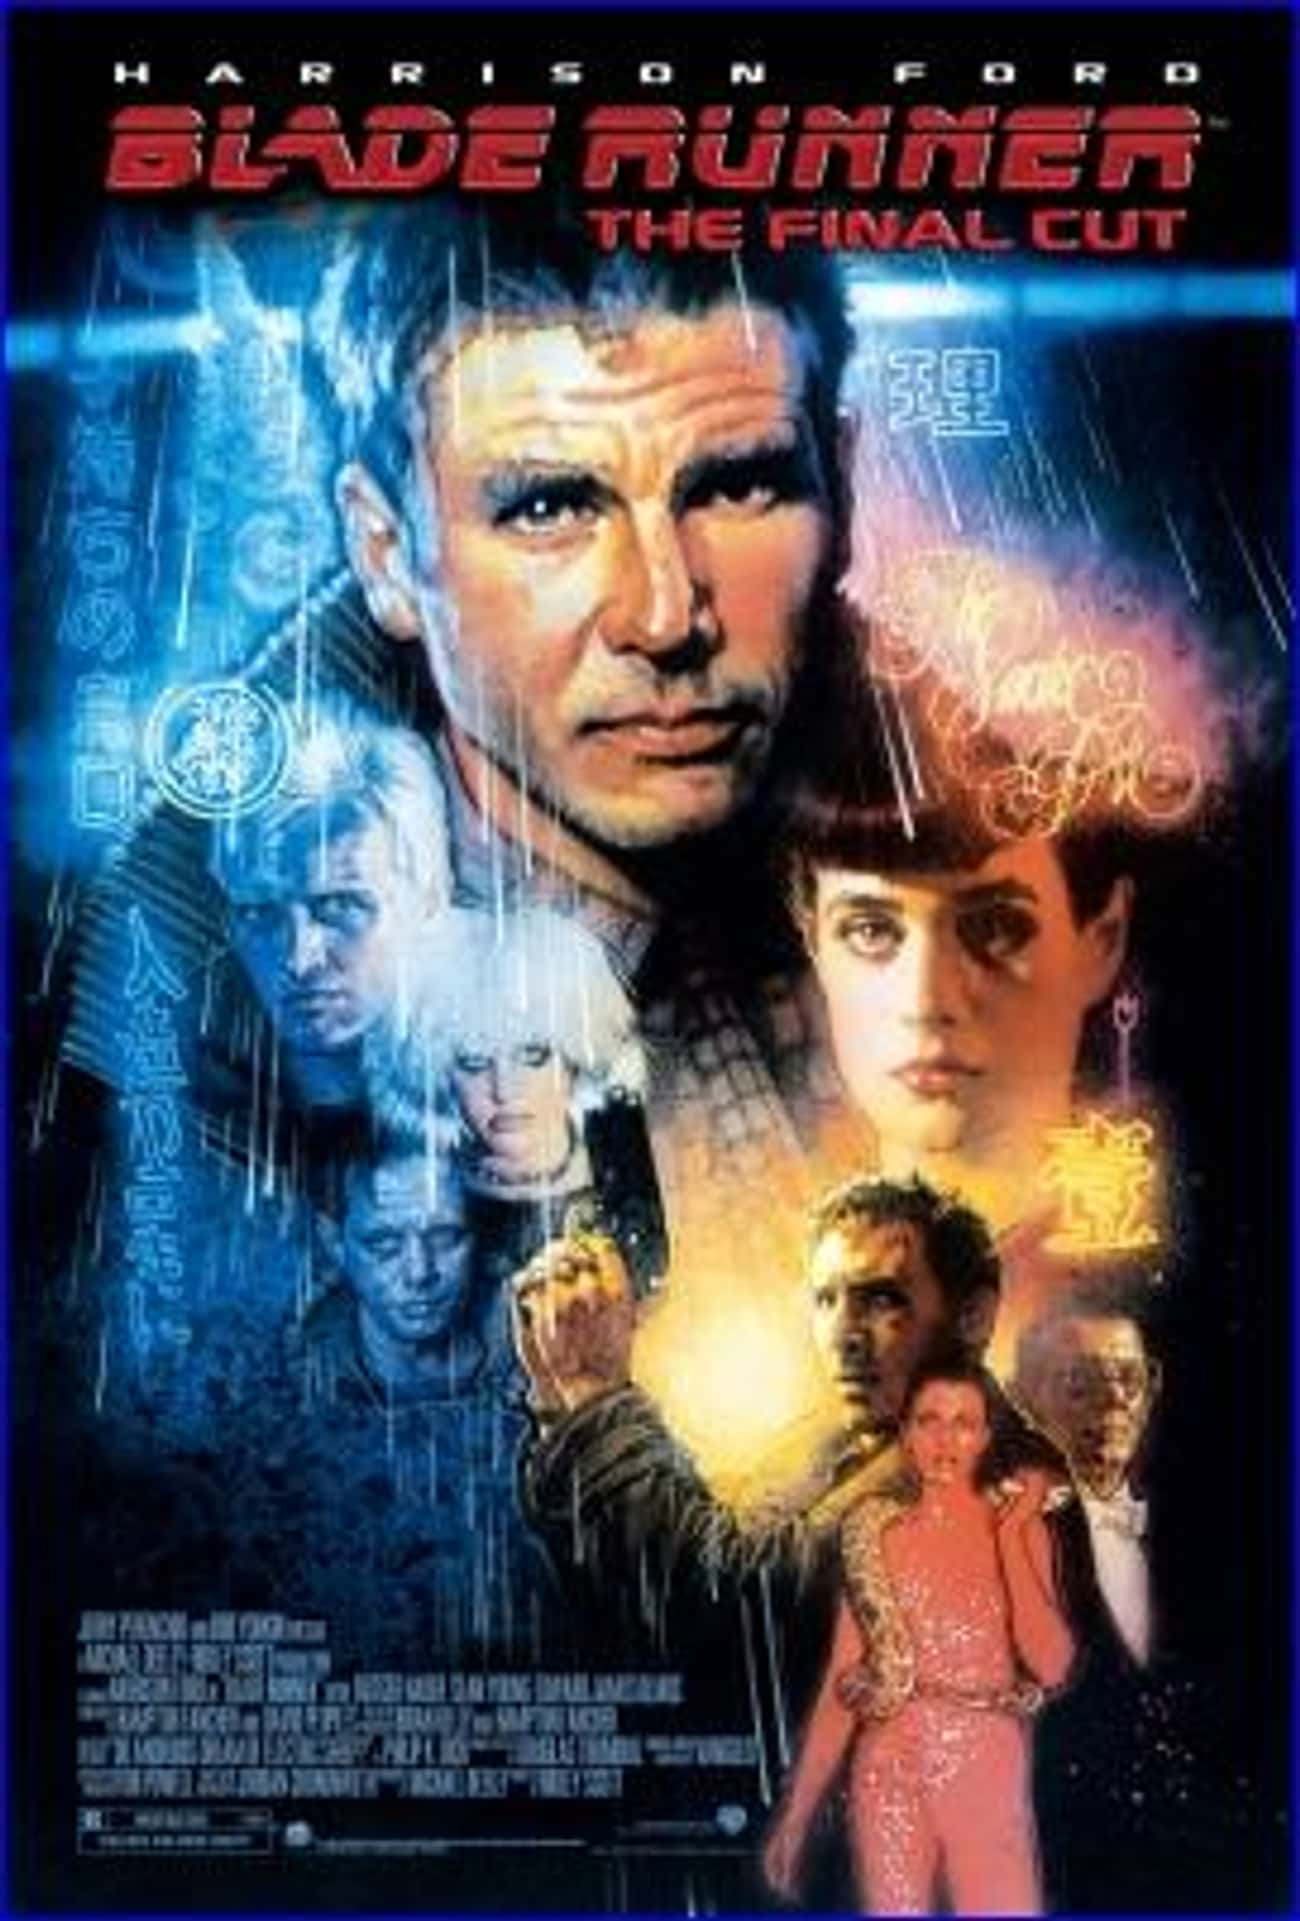 Blade Runner is listed (or ranked) 1 on the list The Best Intelligent Sci-Fi Movies of All Time